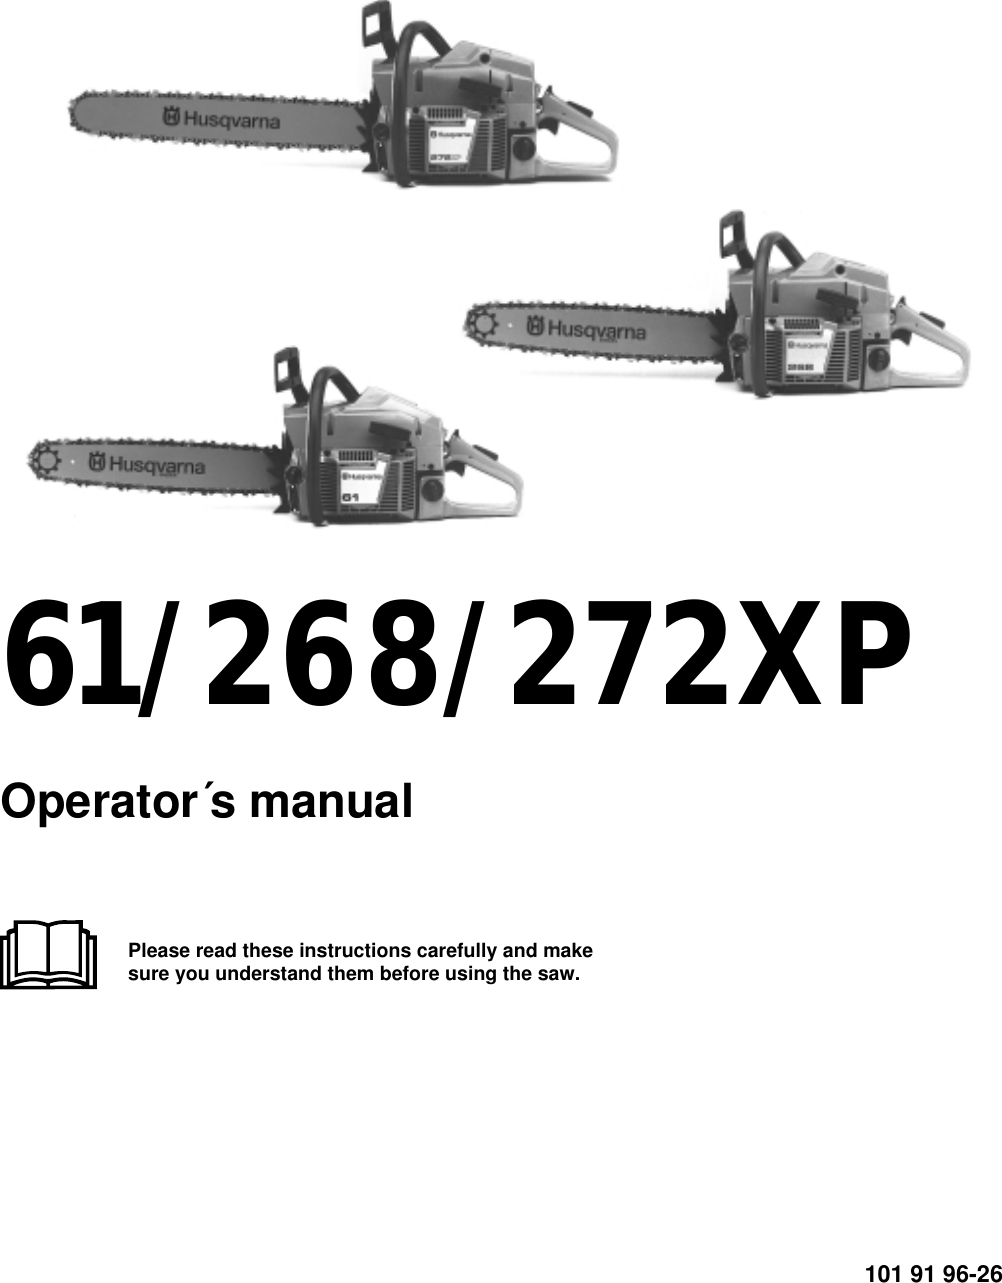 Husqvarna Chainsaw Operators Manual 61 268 272xp 272 Xp Manual Guide